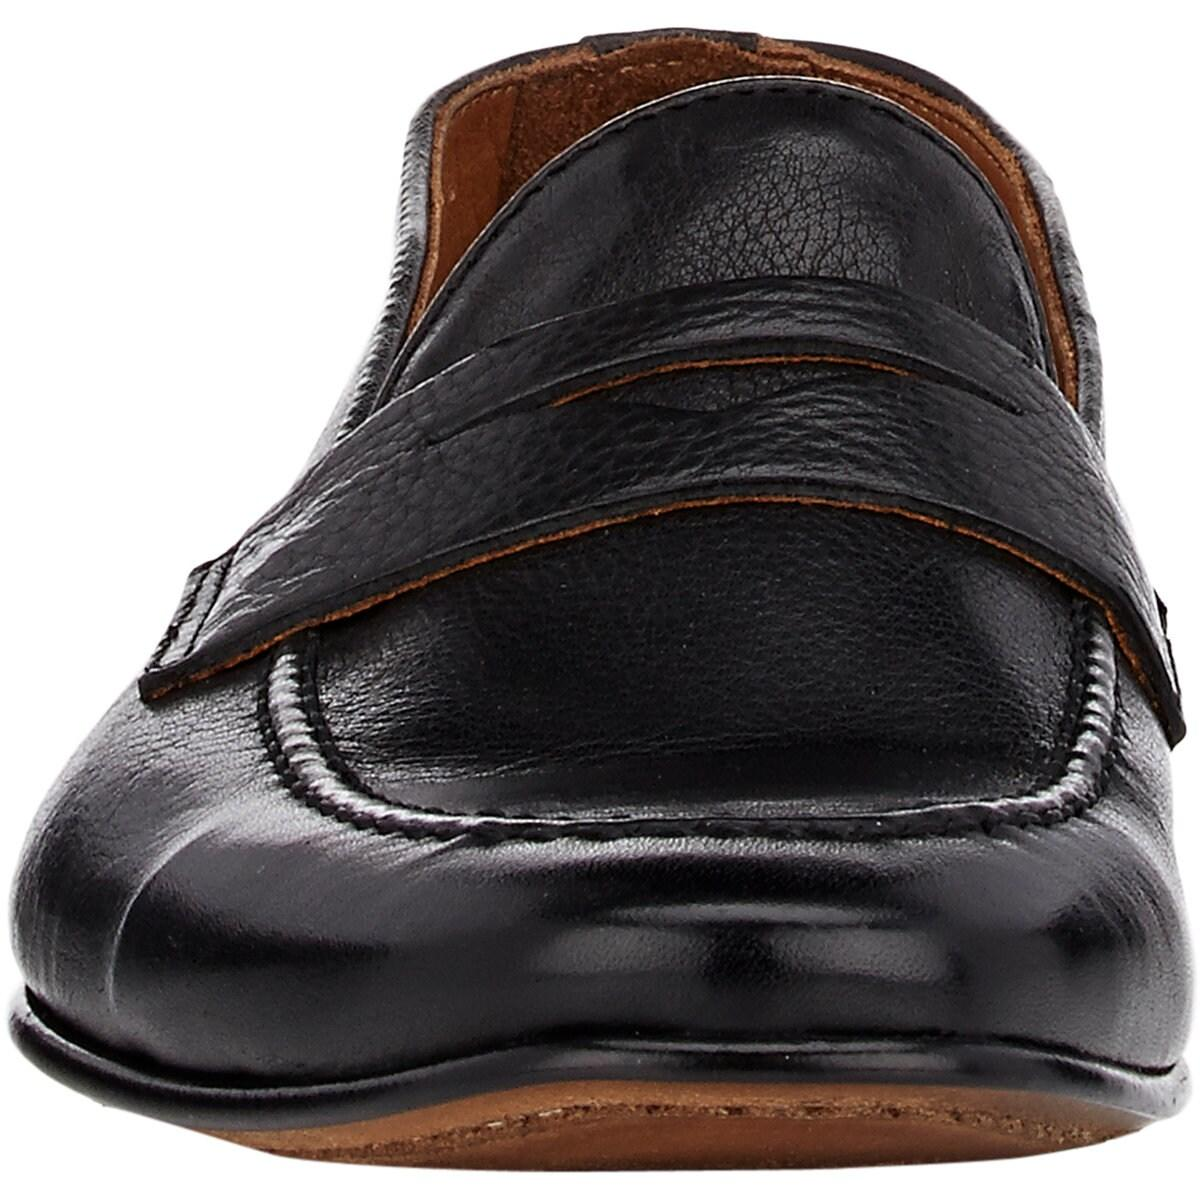 bbae5b32a948a Barneys New York Apron-toe Penny Loafers in Black for Men - Save 50% - Lyst